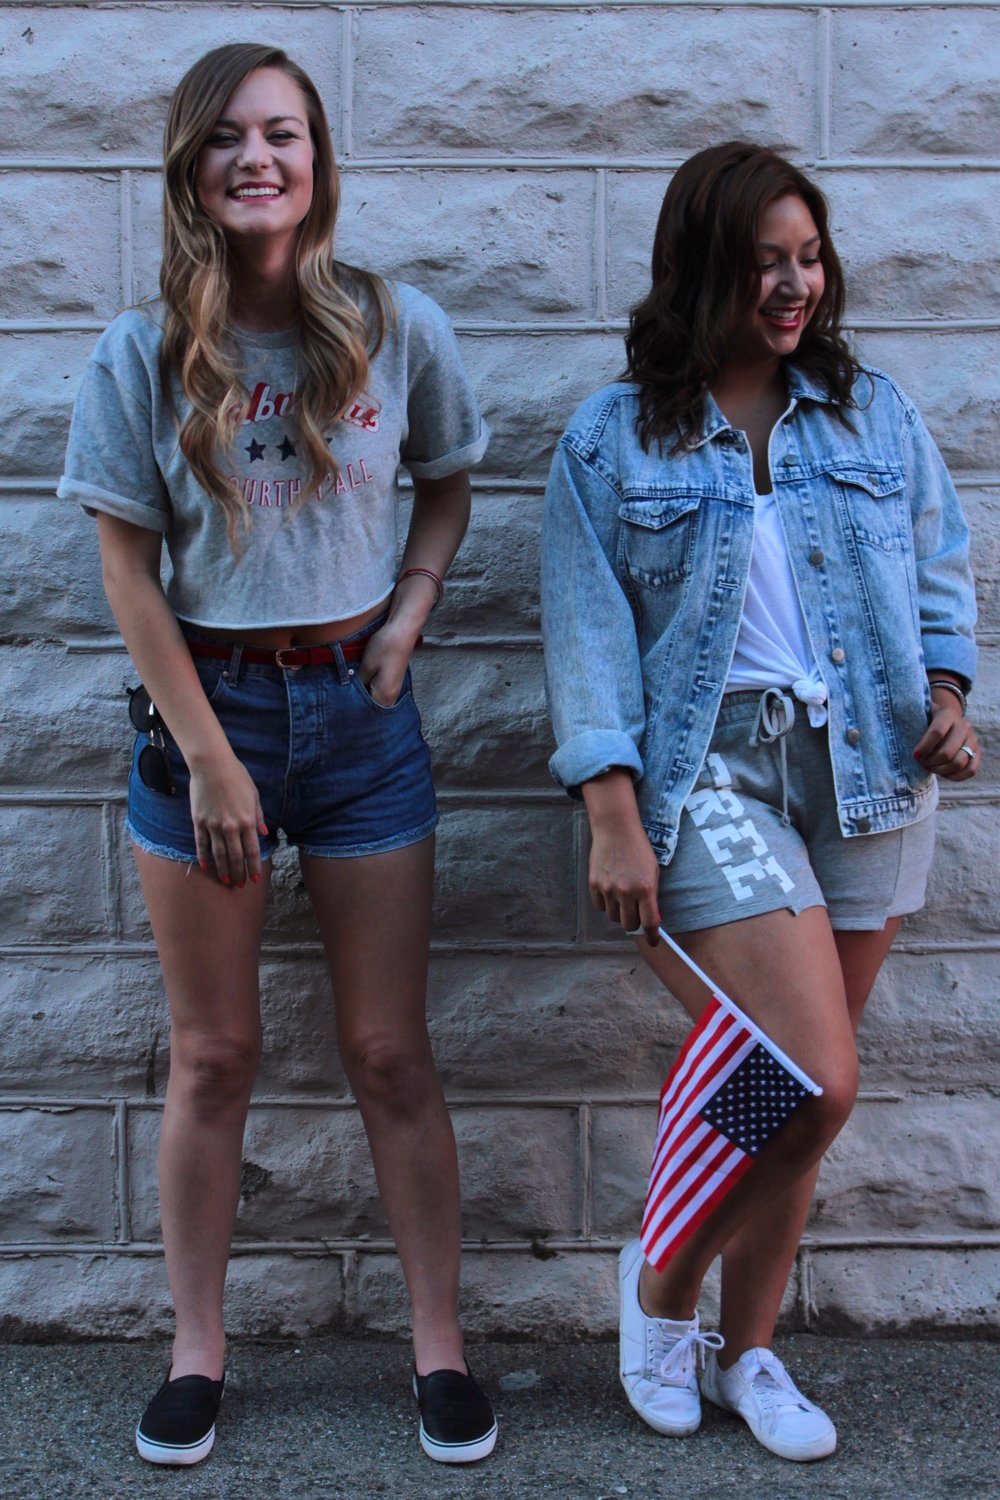 Patriotic Women's Themed Fashion for Independence Day.